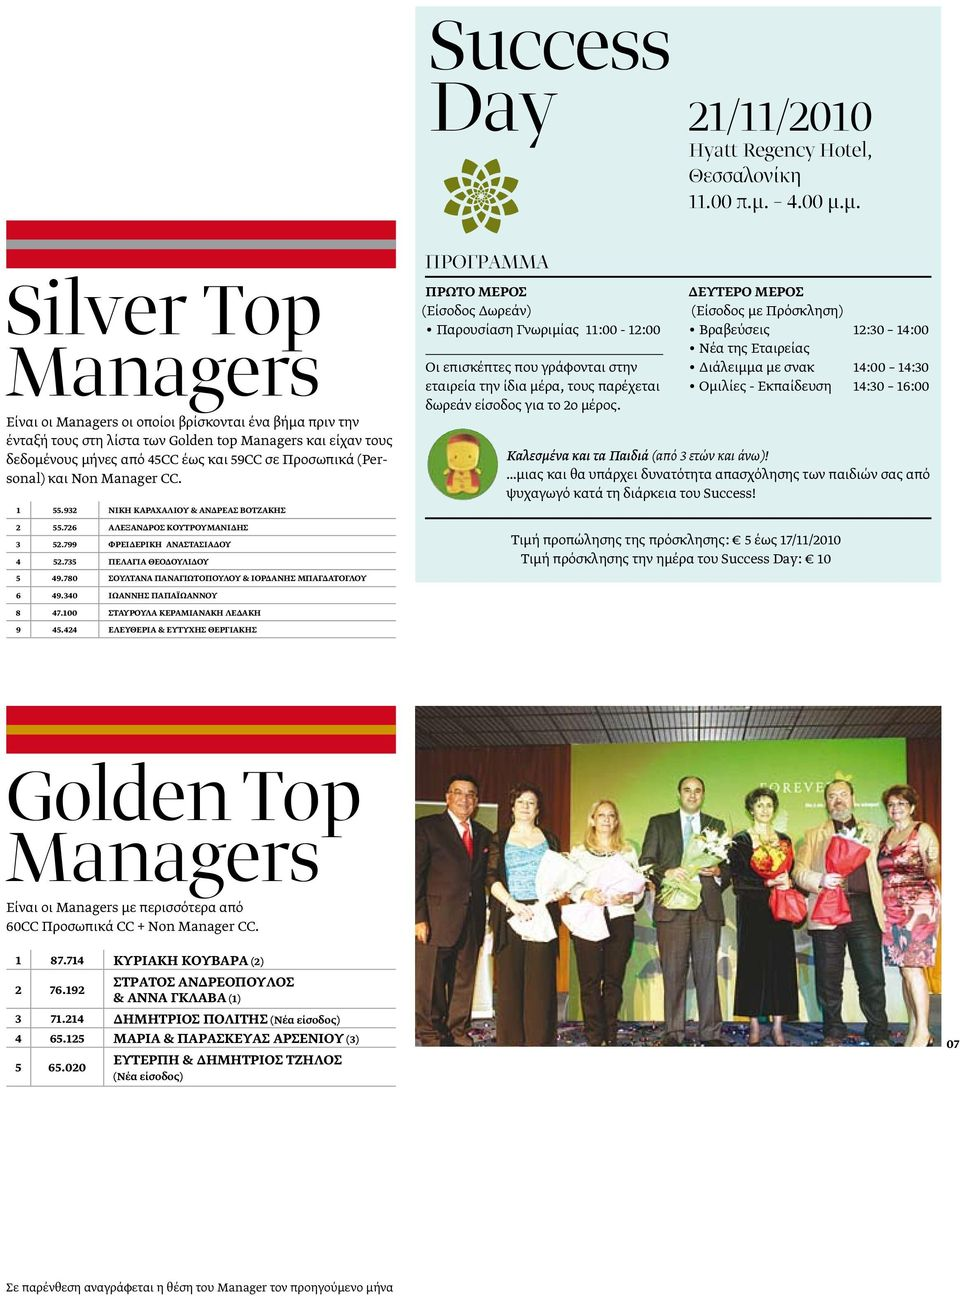 µ. Silver Τop Managers Είναι οι Managers οι οποίοι βρίσκονται ένα βήµα πριν την ένταξή τους στη λίστα των Golden top Managers και είχαν τους δεδοµένους µήνες από 45CC έως και 59CC σε Προσωπικά